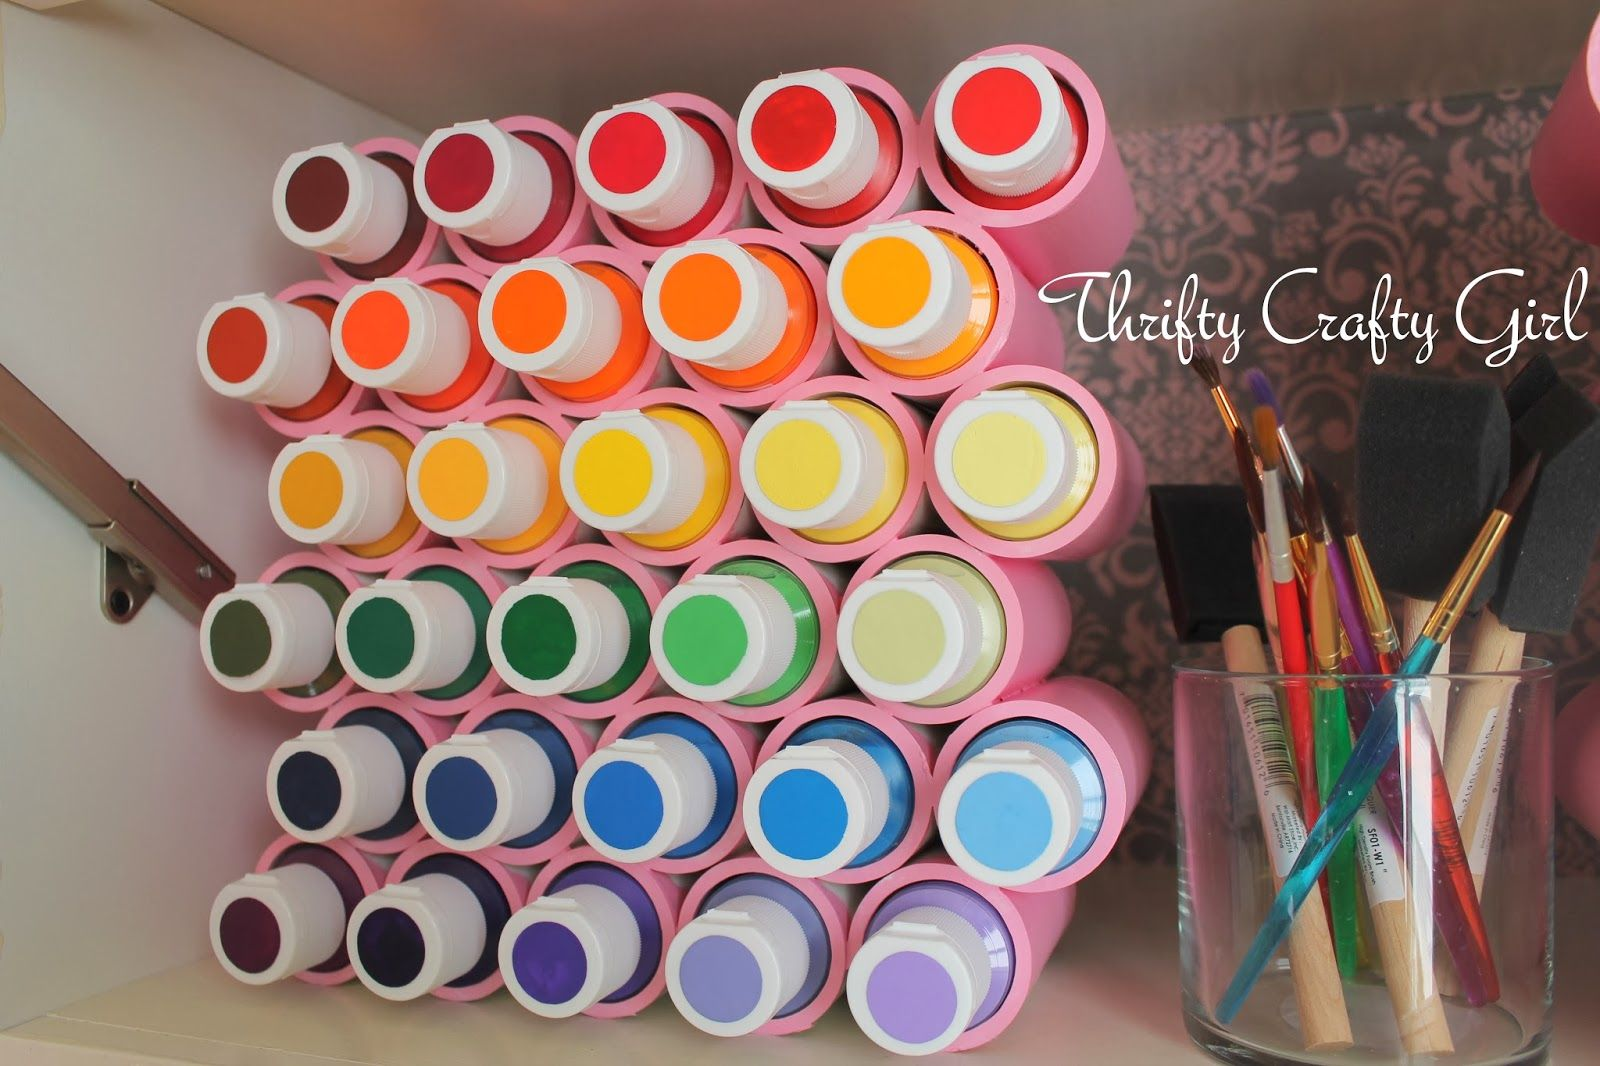 Acrylic Paint Storage - Thrifty Crafty Girl